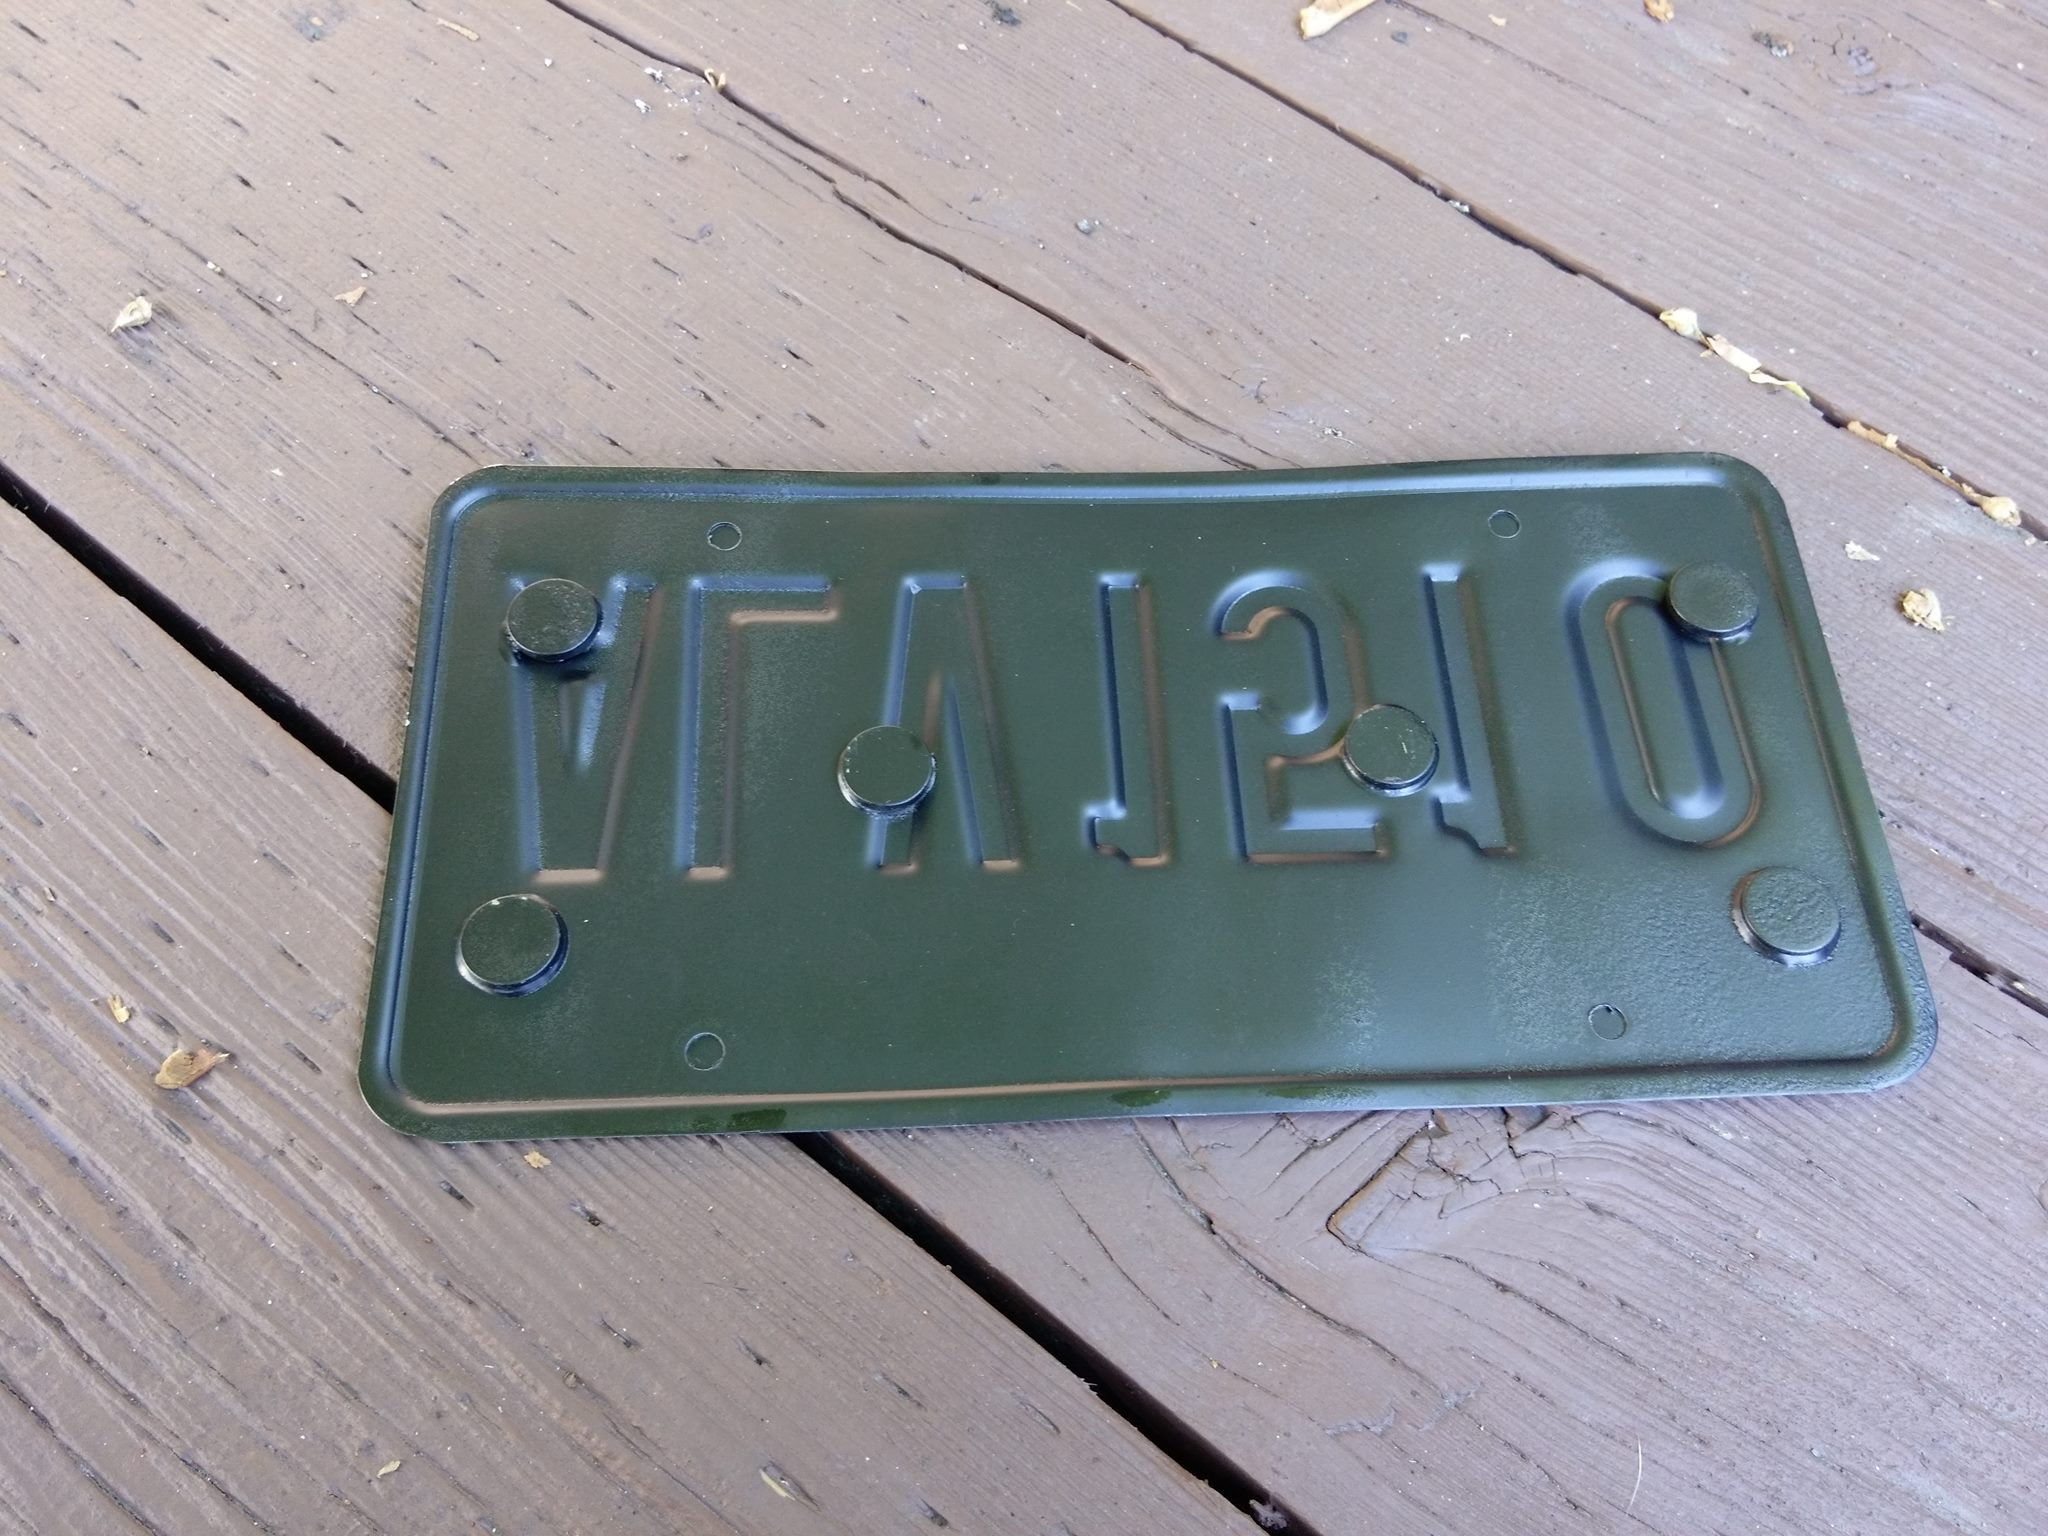 For Shawn Hammer: the back of the front license plate (and how it sit